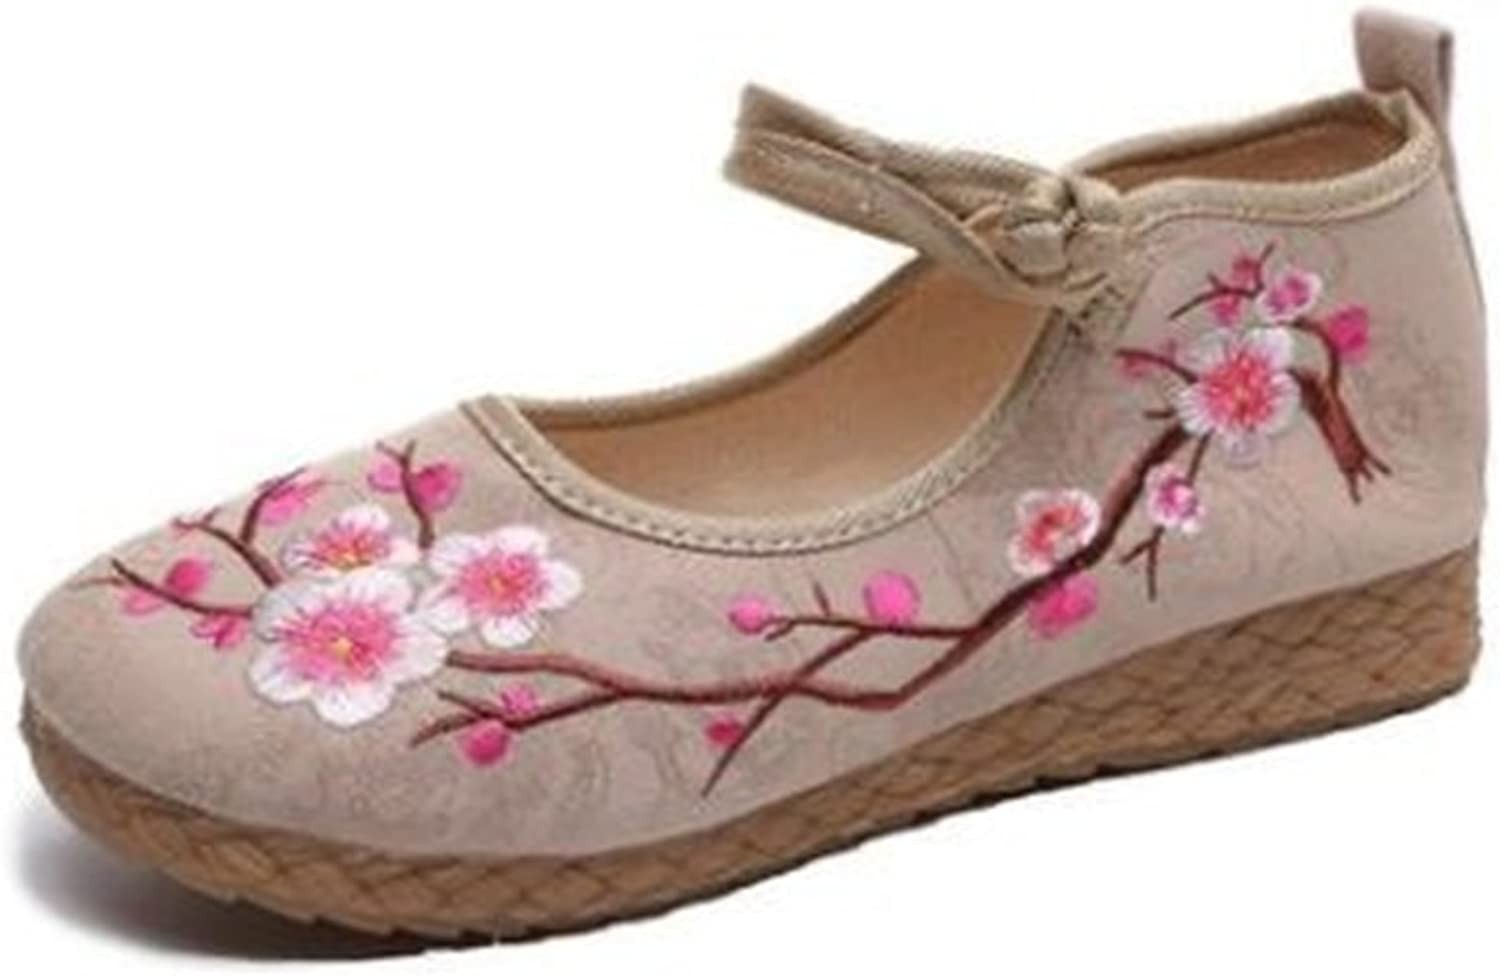 BeautyOriginal Women's Toe Embroidered shoes Lace Up colorful Casual Flats shoes